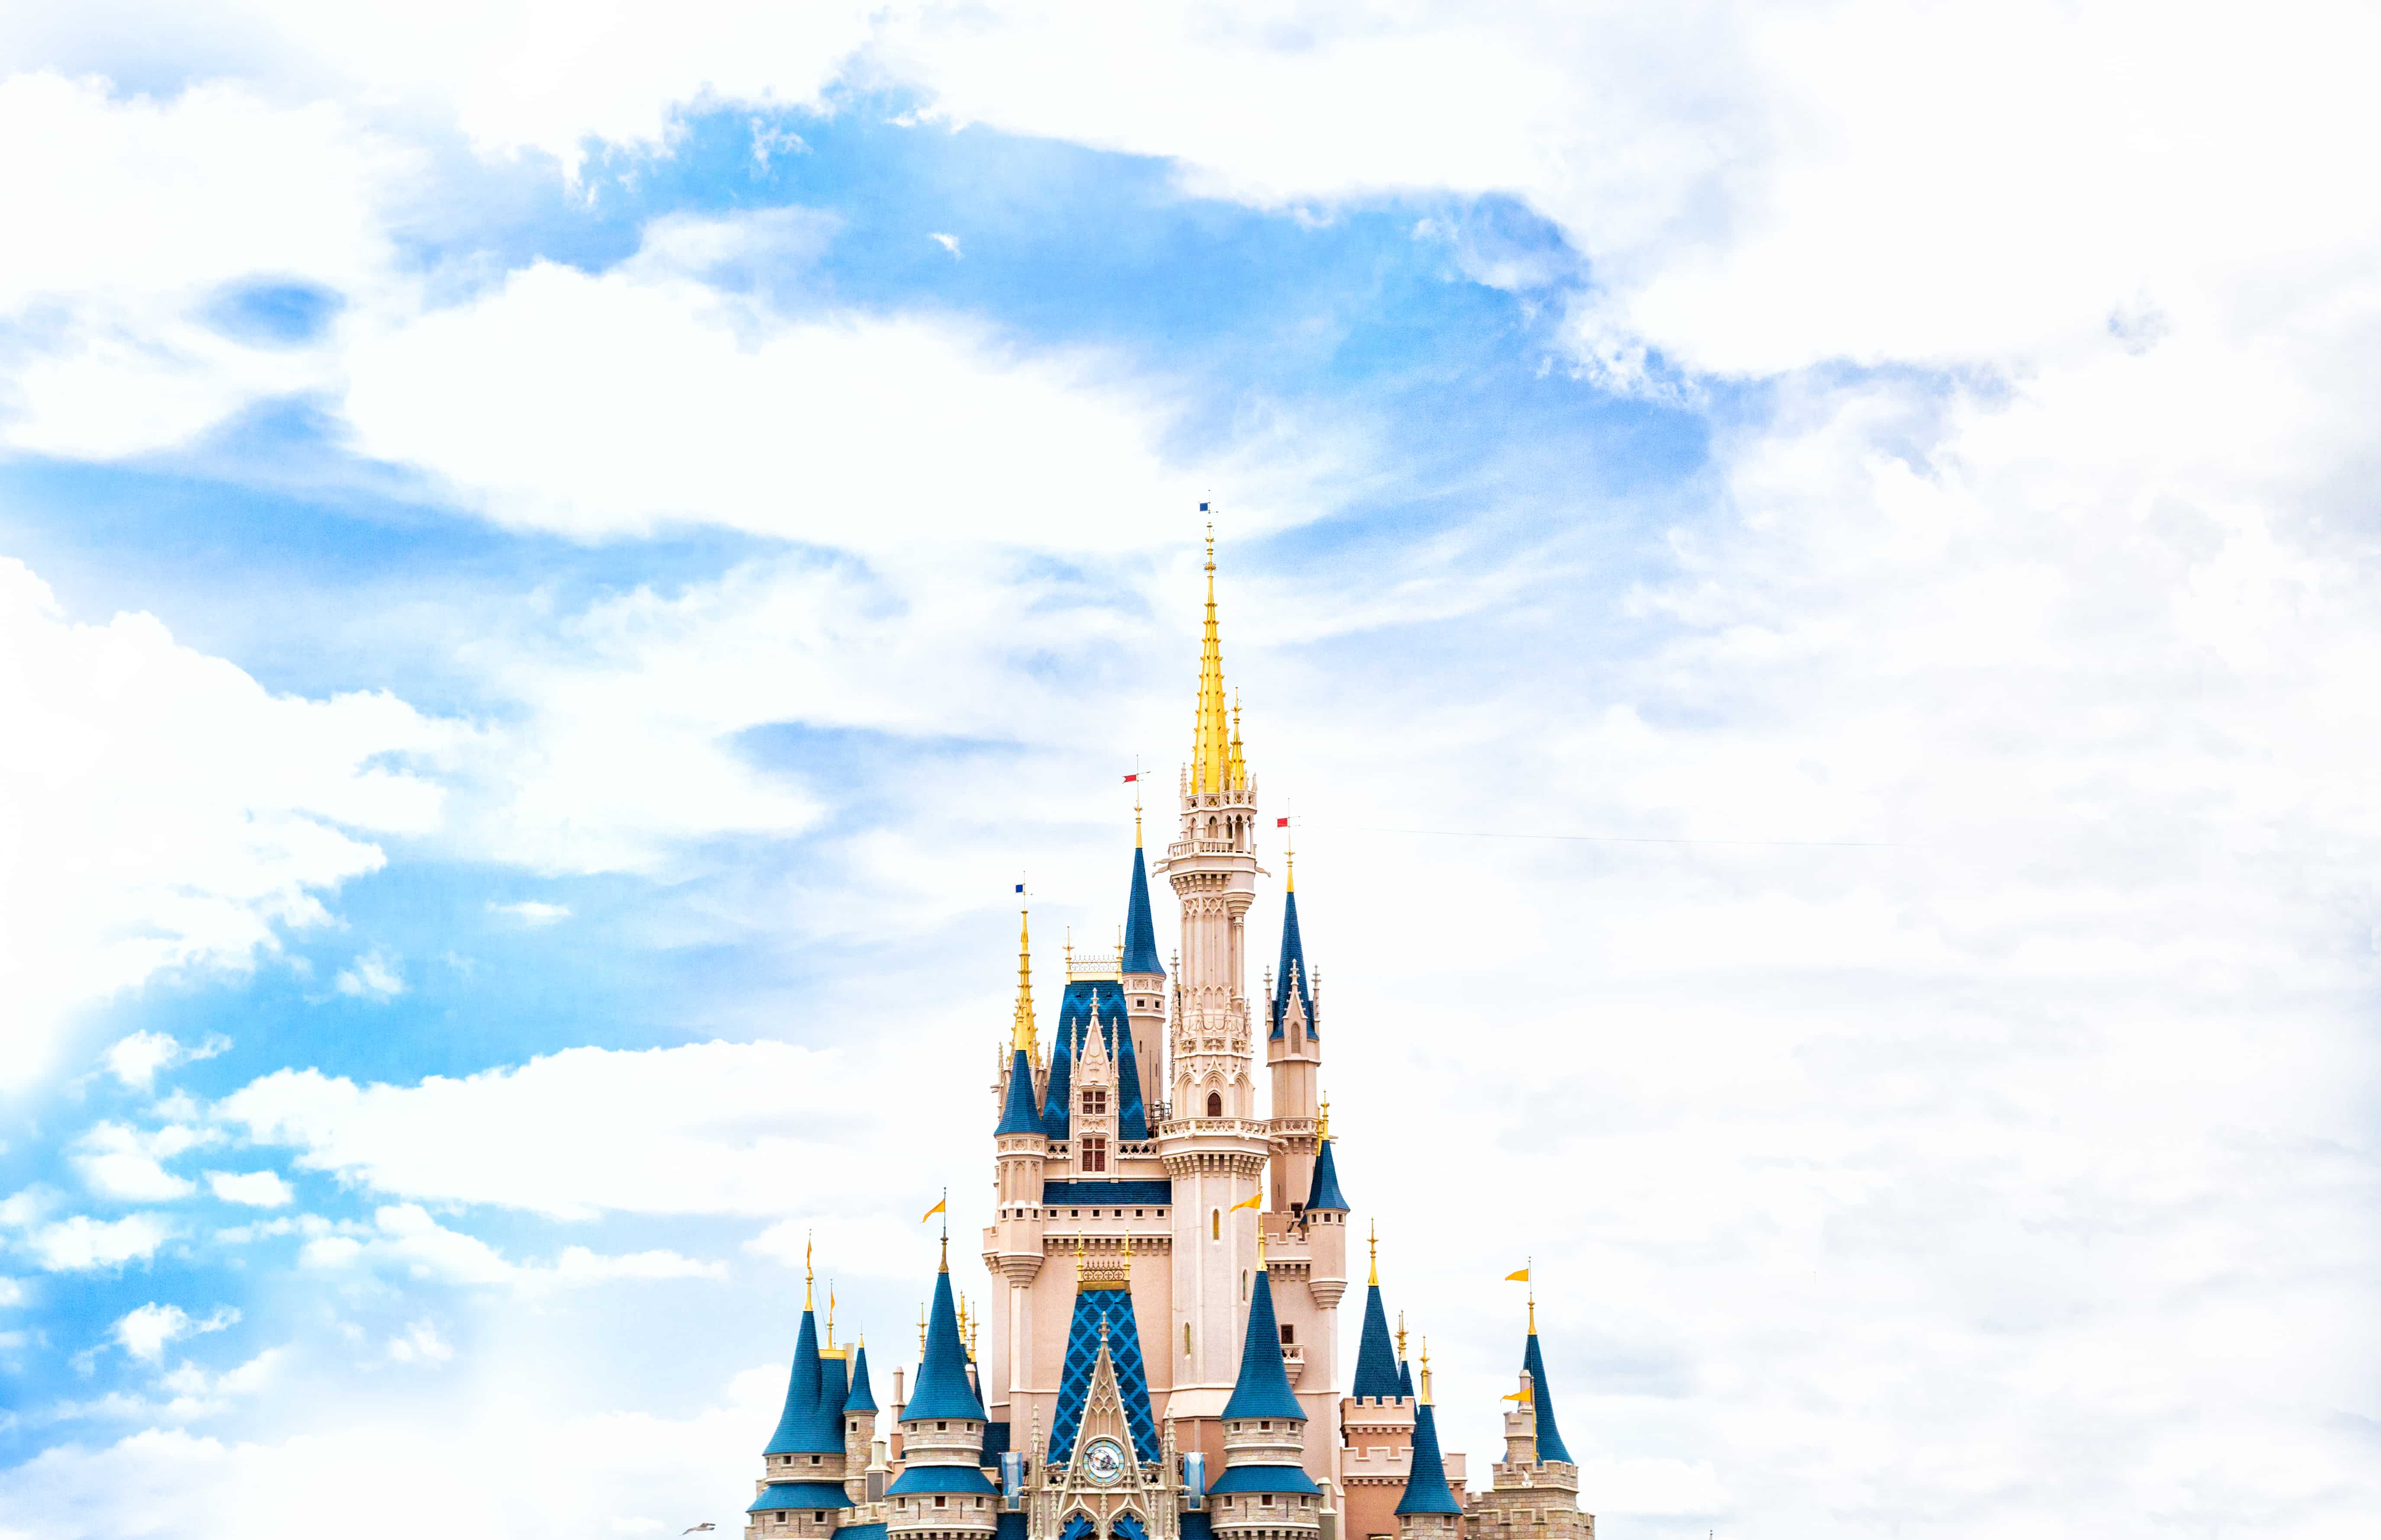 disney cinderella castle, symbolizing a luxury disney vacation